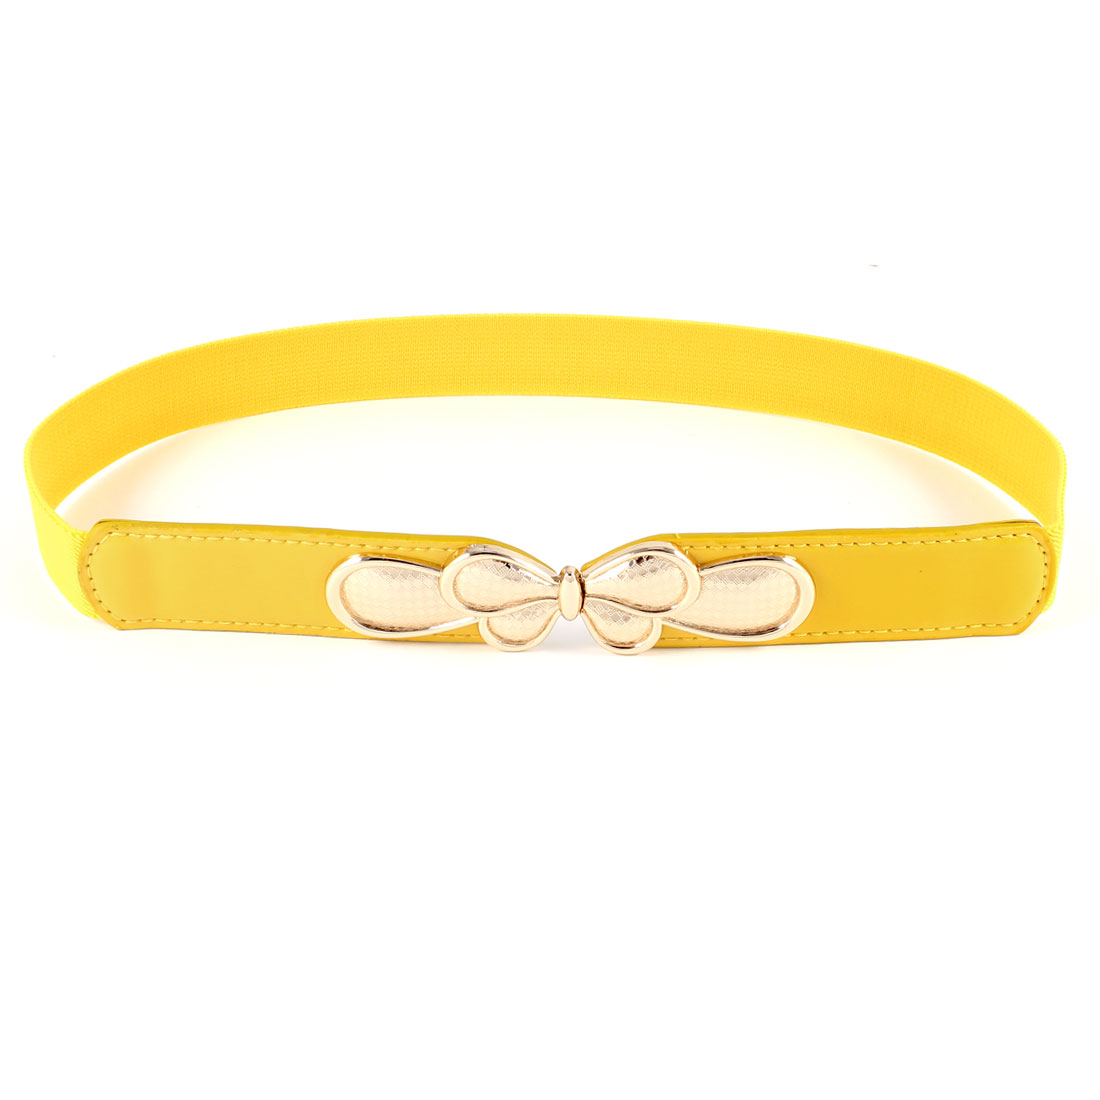 Yellow Gold Tone Faux Leather Textured Waistband Stretchy Skinny Belt for Women